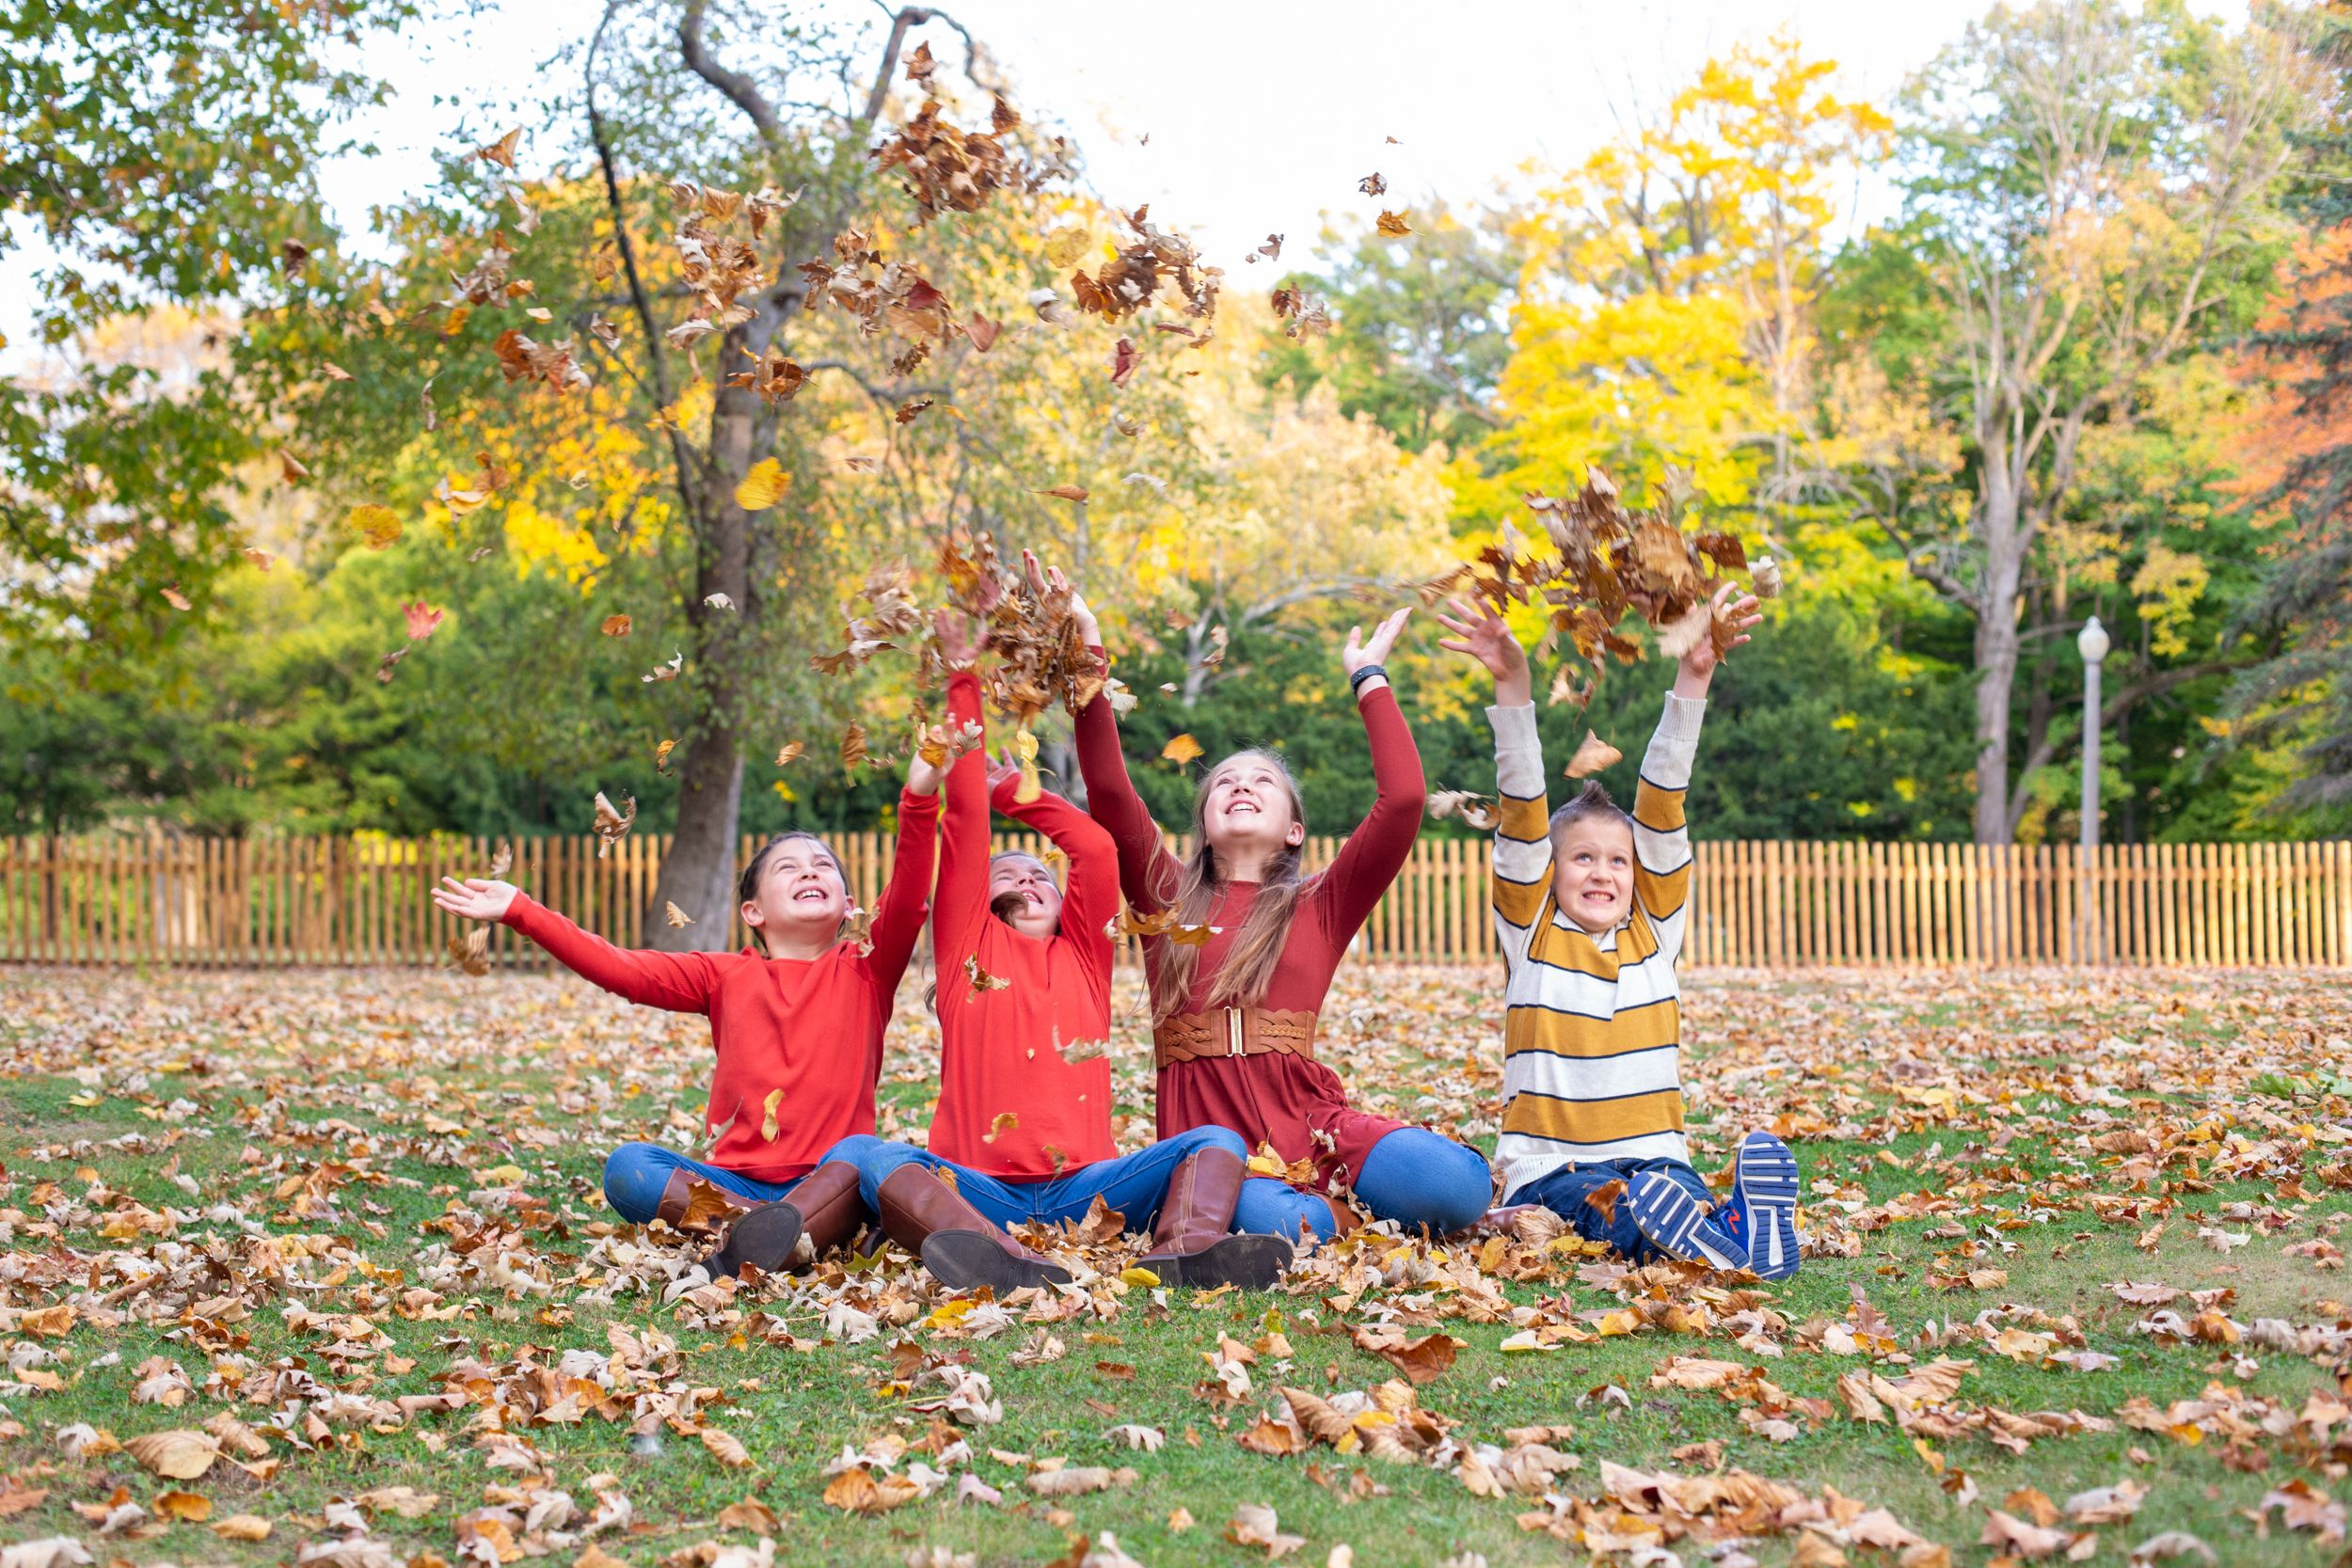 Kids Photography, Children Photography, Fun Photography with Kids, Fall Photography, Fall Family Photography, Kohler, WI